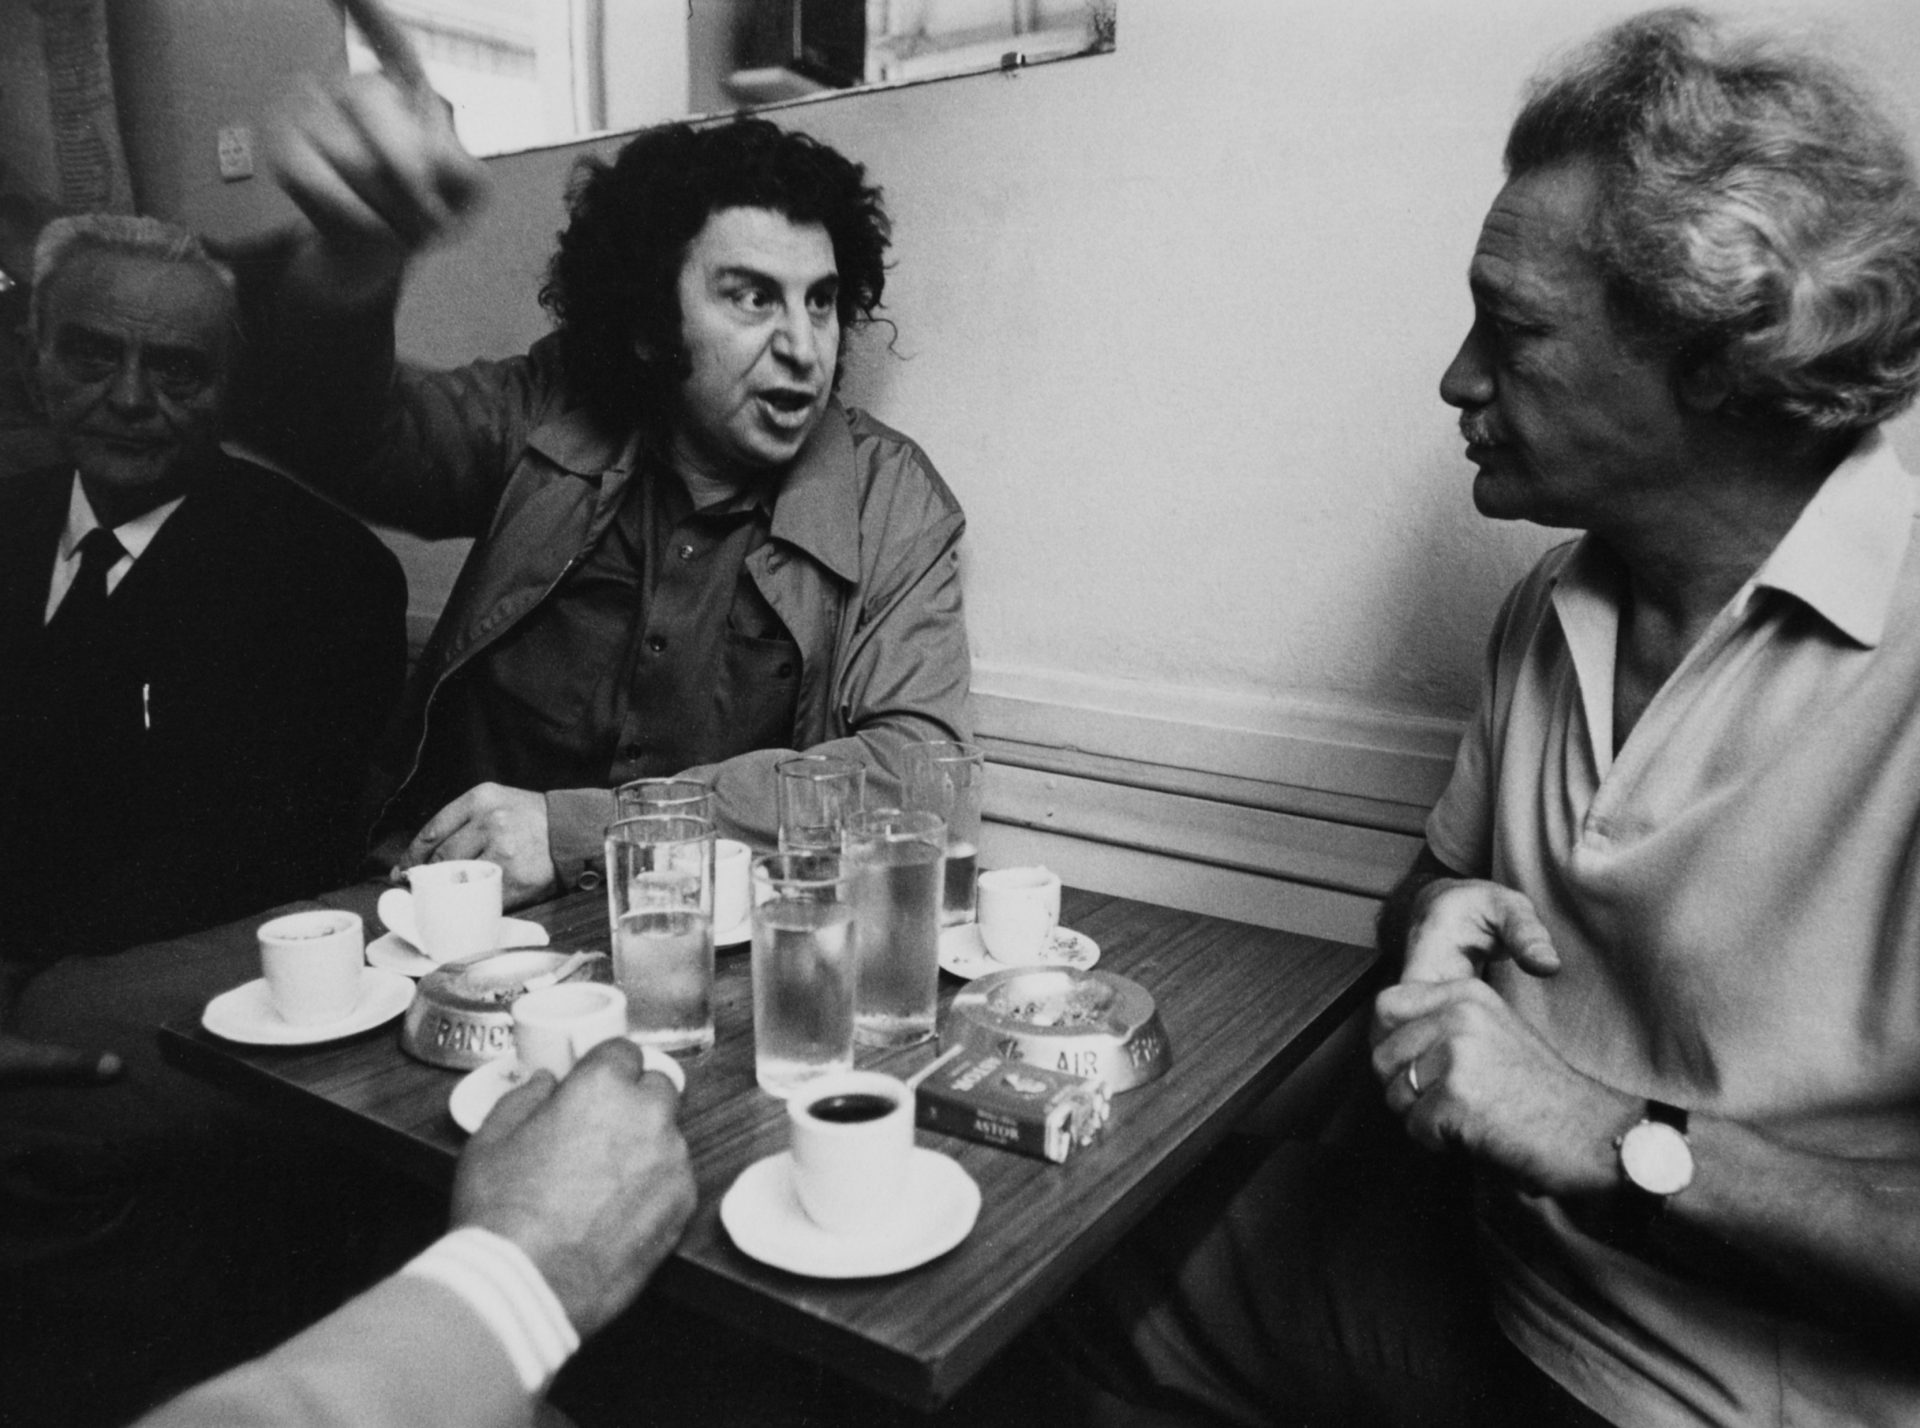 Mikis Theodorakis is wrapped up in a political discussion in an Athens pub after returning from exile. Credit: Wolfgang Kunz/ullstein bild via Getty Images